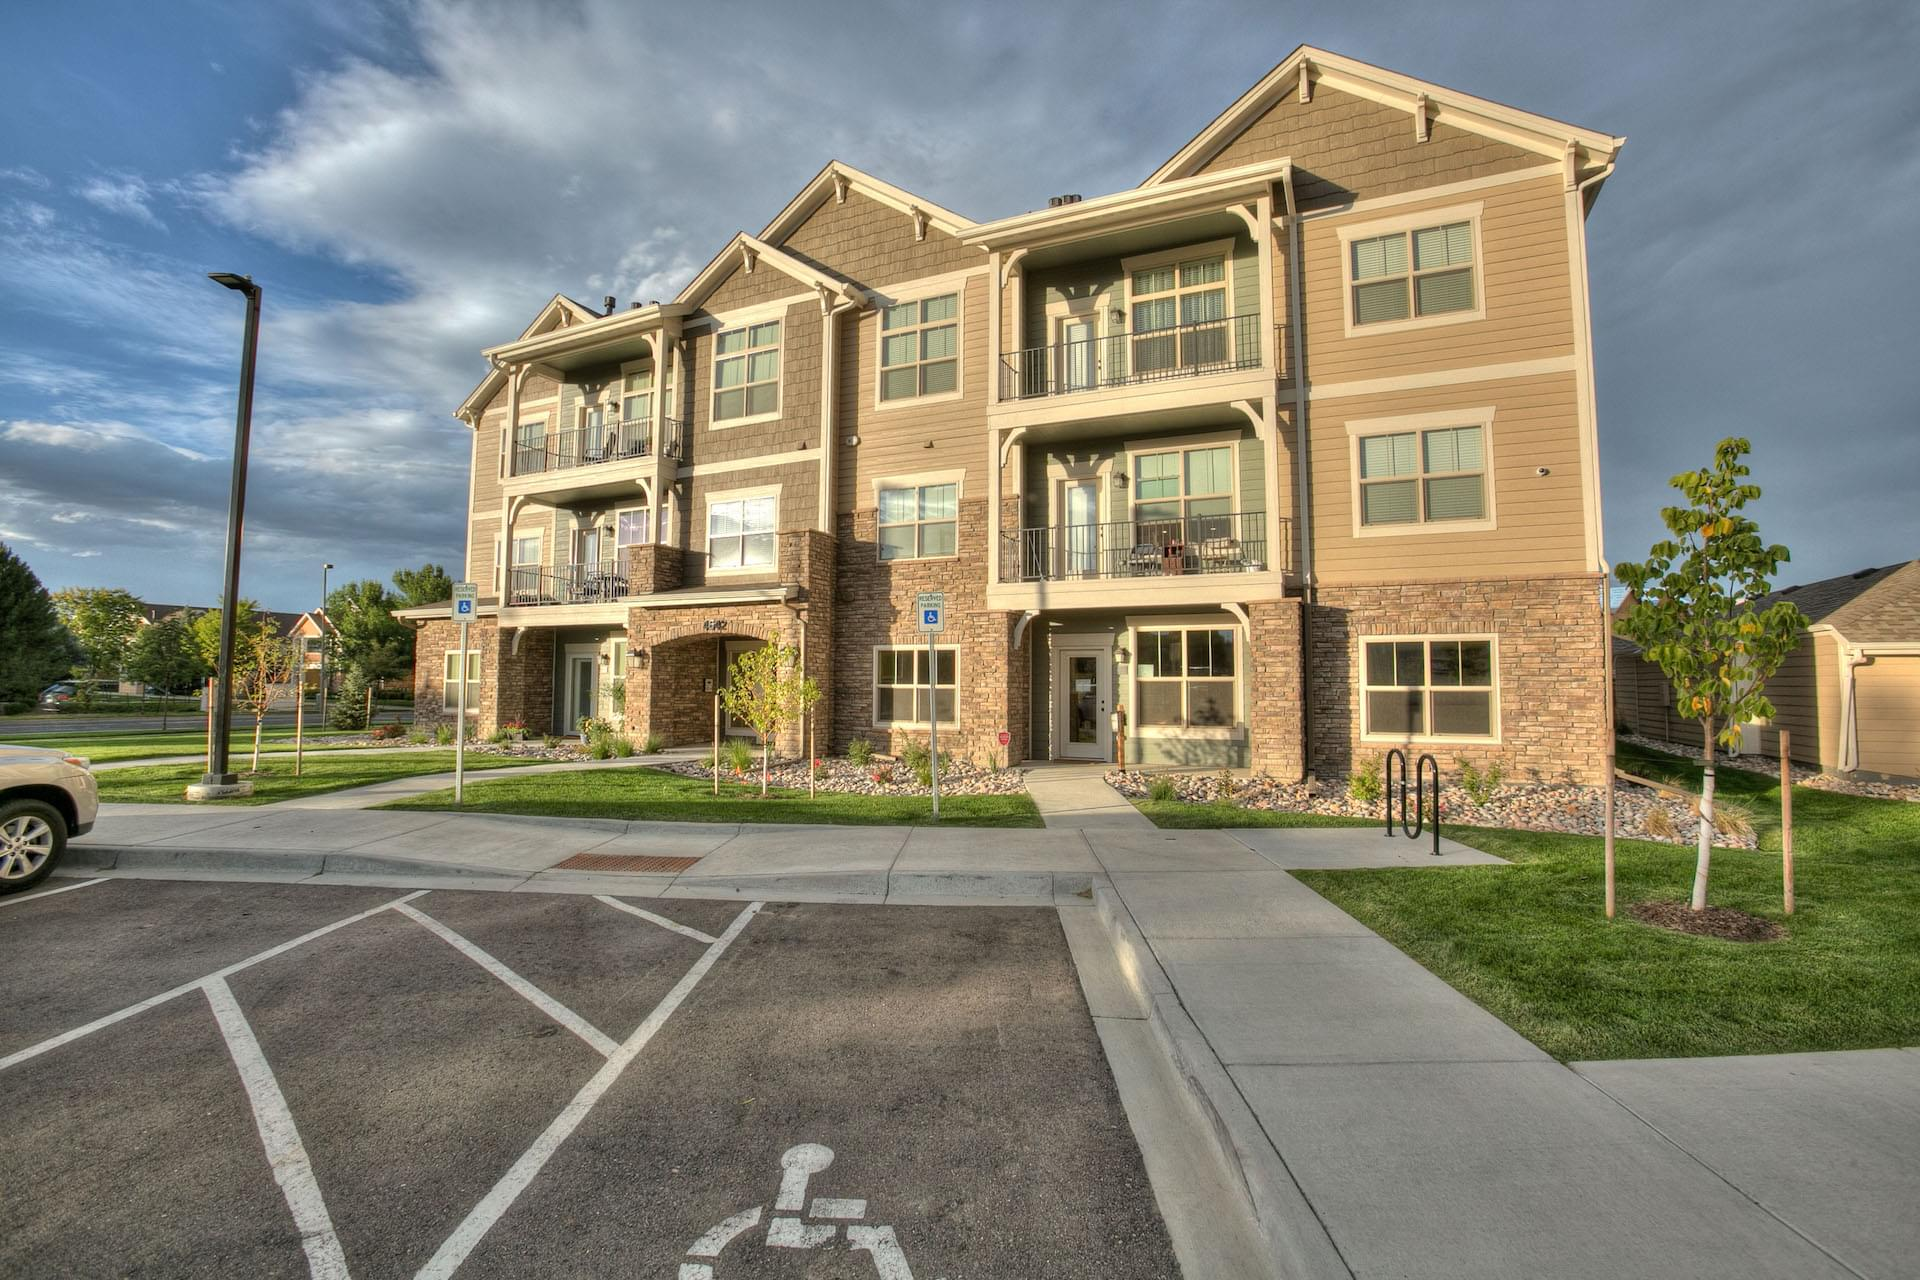 The Flats at Centerra New Homes in Loveland, CO